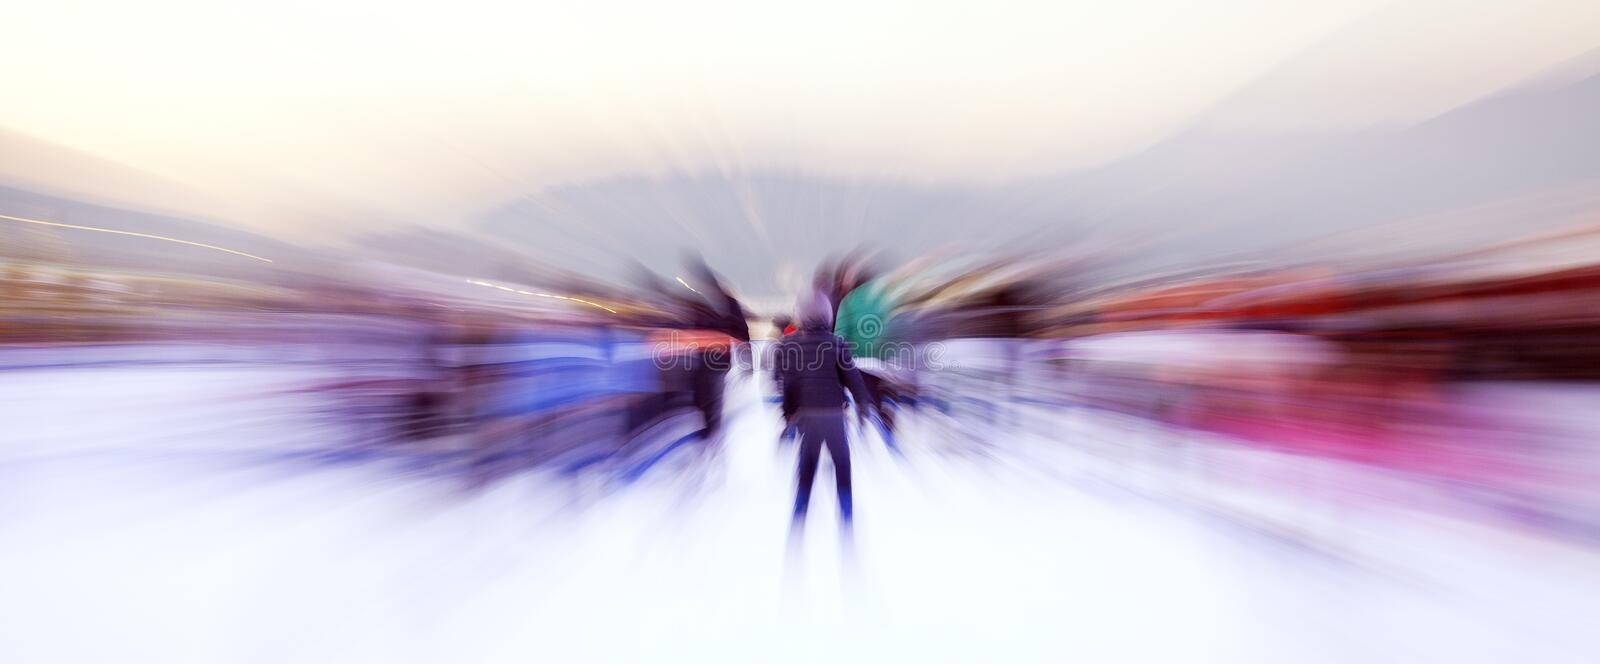 People on a ice rink, blurred motion. Color image. Some people are skating on a ice rink, during the holiday in Xmas time royalty free stock photography